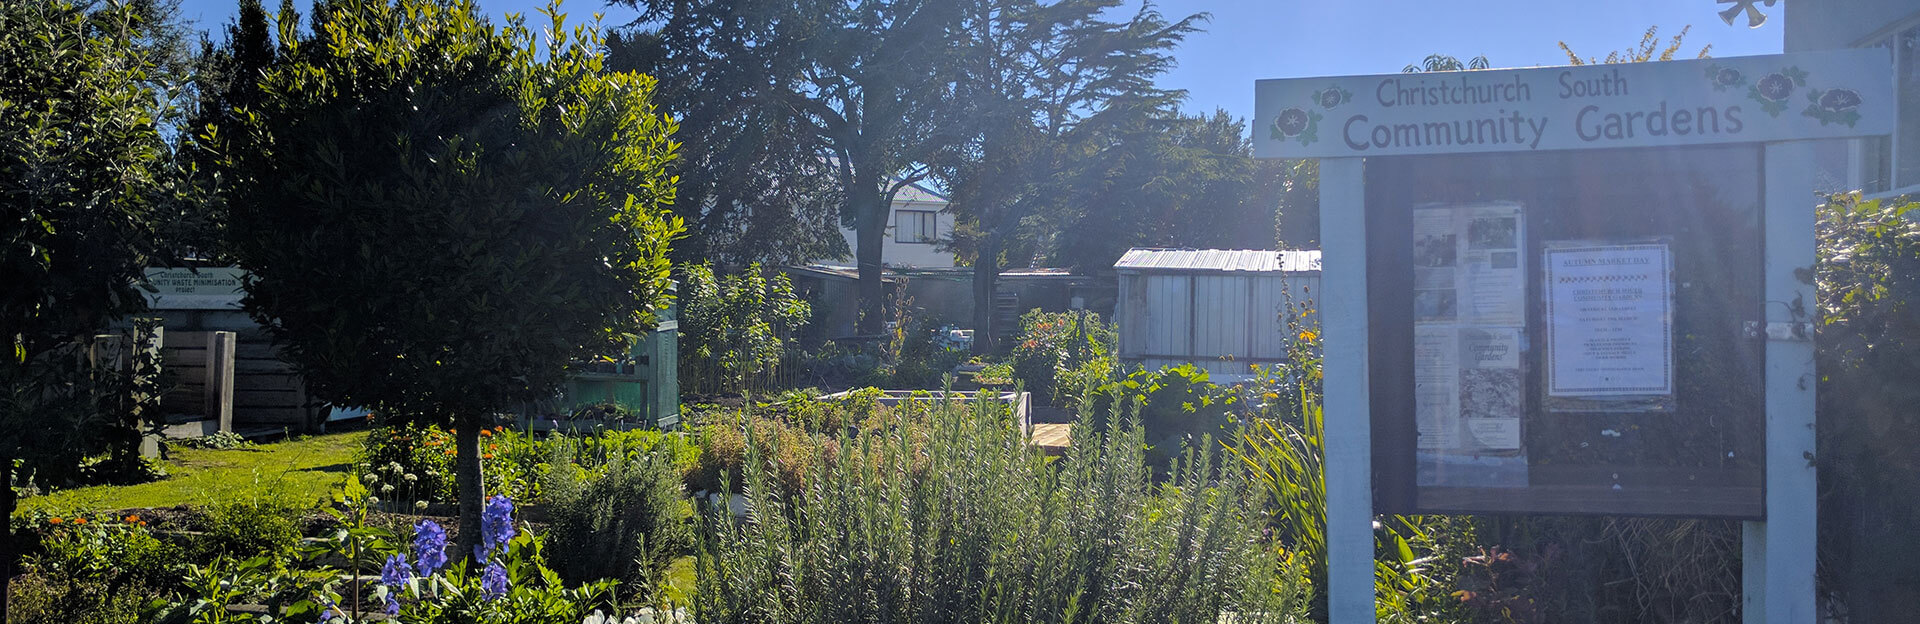 view of christchurch south community gardens